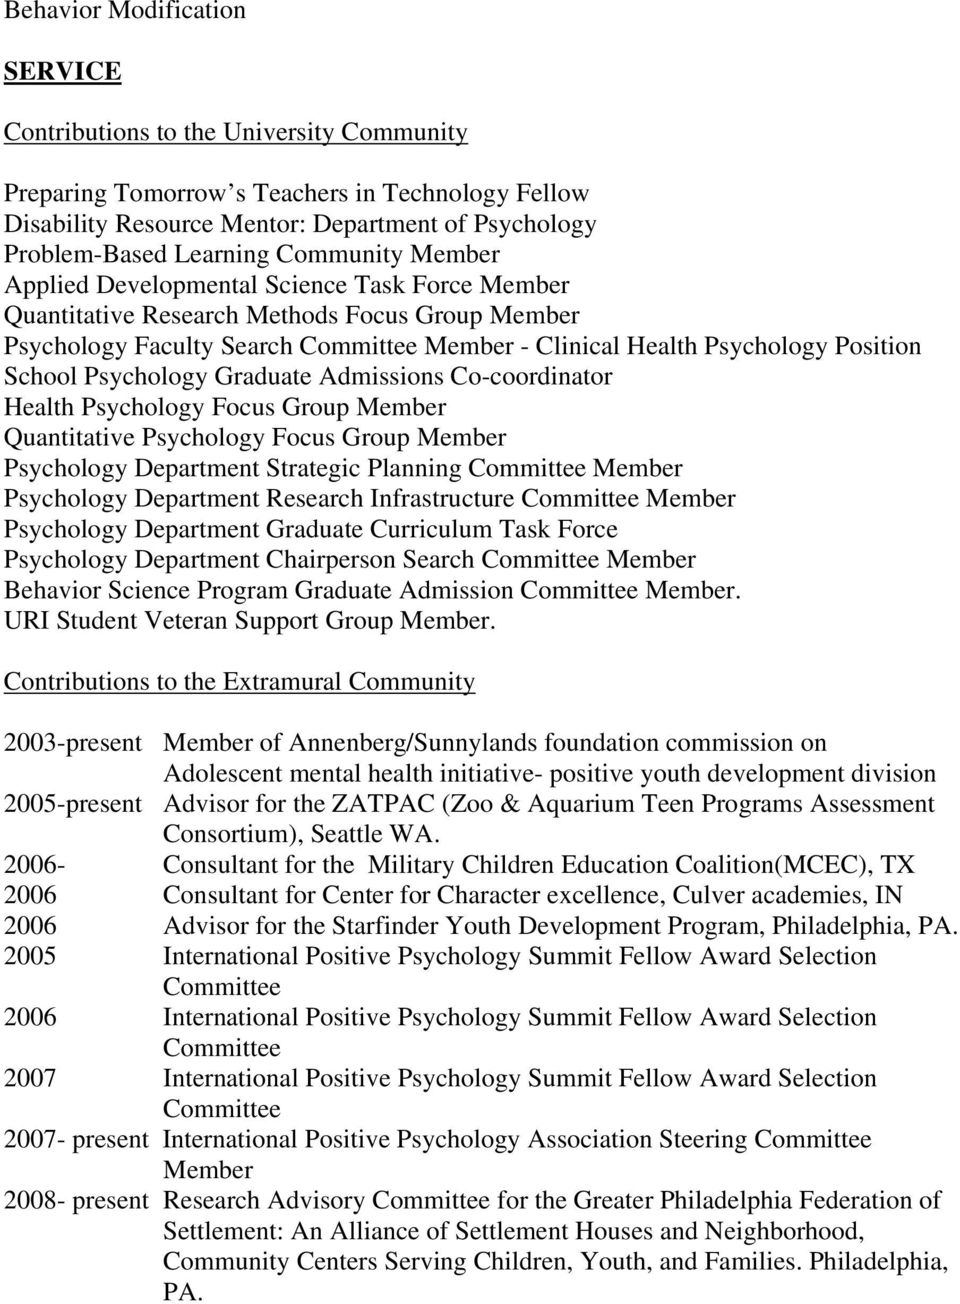 School Psychology Graduate Admissions Co-coordinator Health Psychology Focus Group Member Quantitative Psychology Focus Group Member Psychology Department Strategic Planning Committee Member